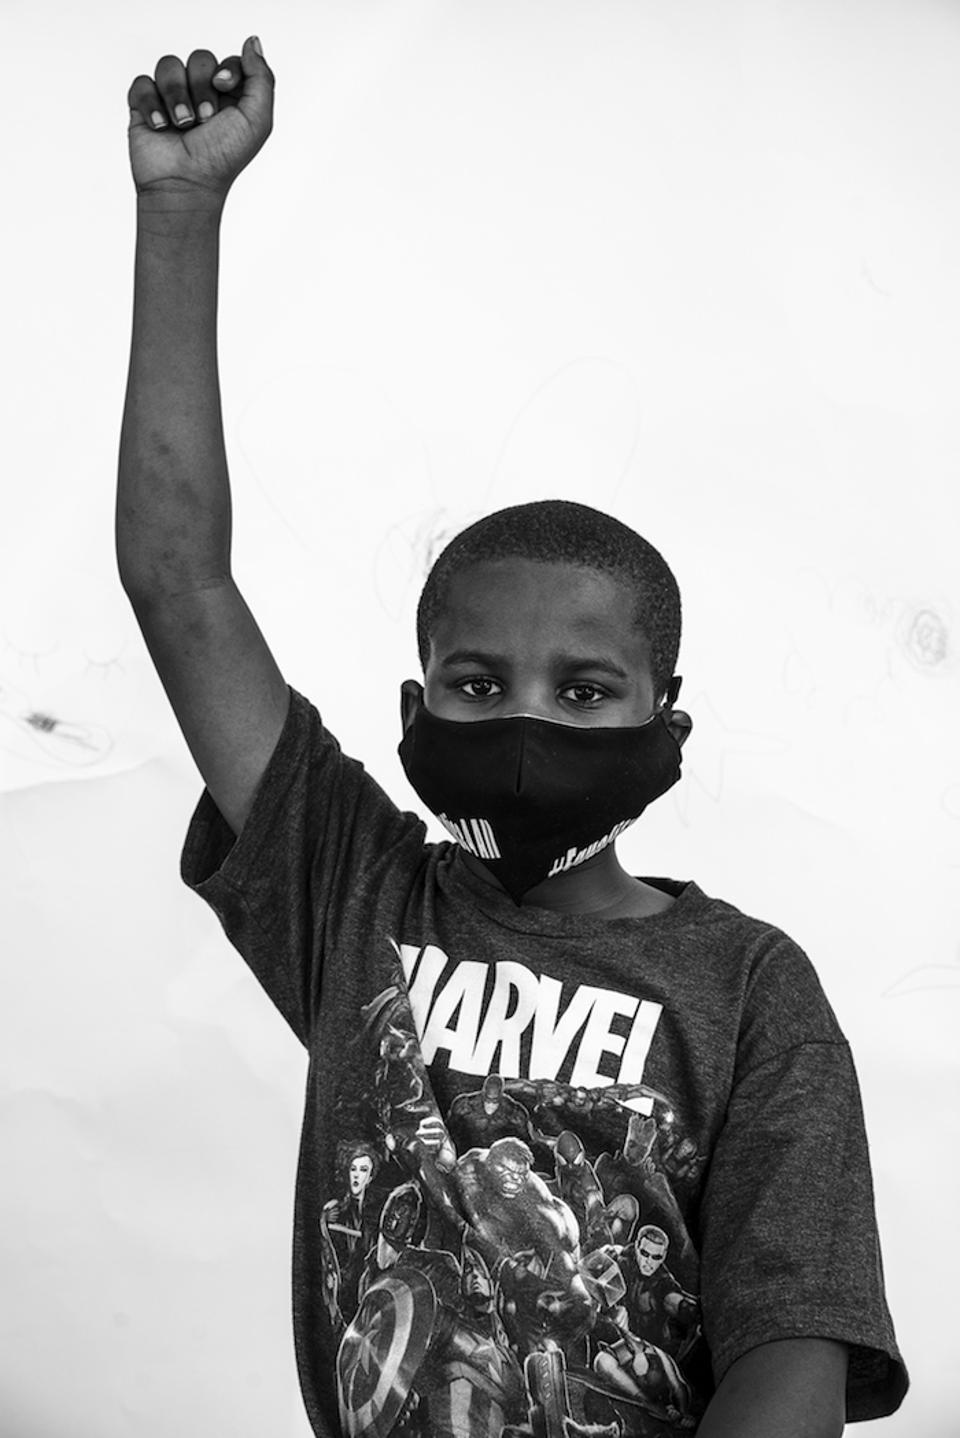 Xavier, 9, at the Stroll for Freedom in Bedford-Stuyvesant, Brooklyn, New York in June 2020.